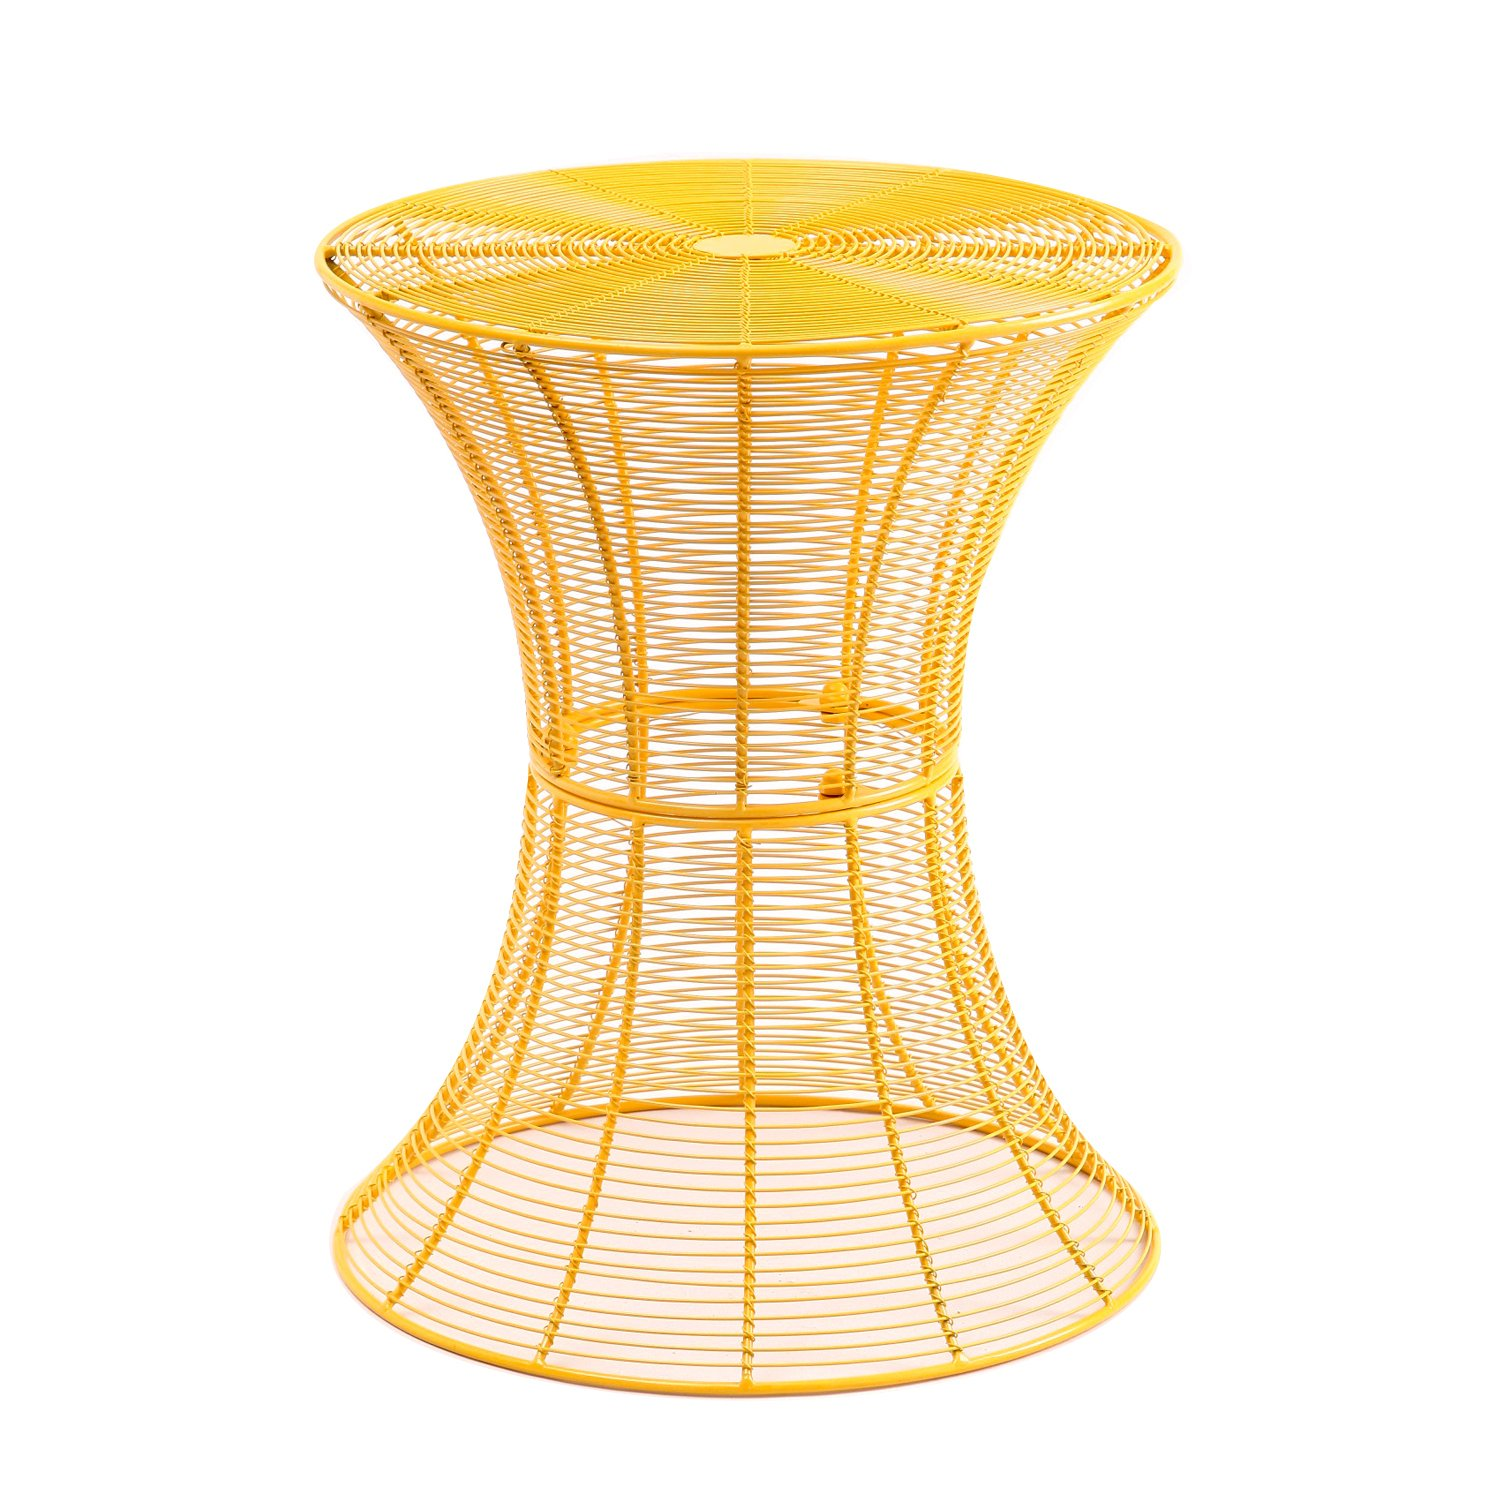 iron round yellow end side table free shipping today adeco hourglass bright outdoor wrought tables with glass tops brown wicker tree stump candle decorations nautical lamp antique